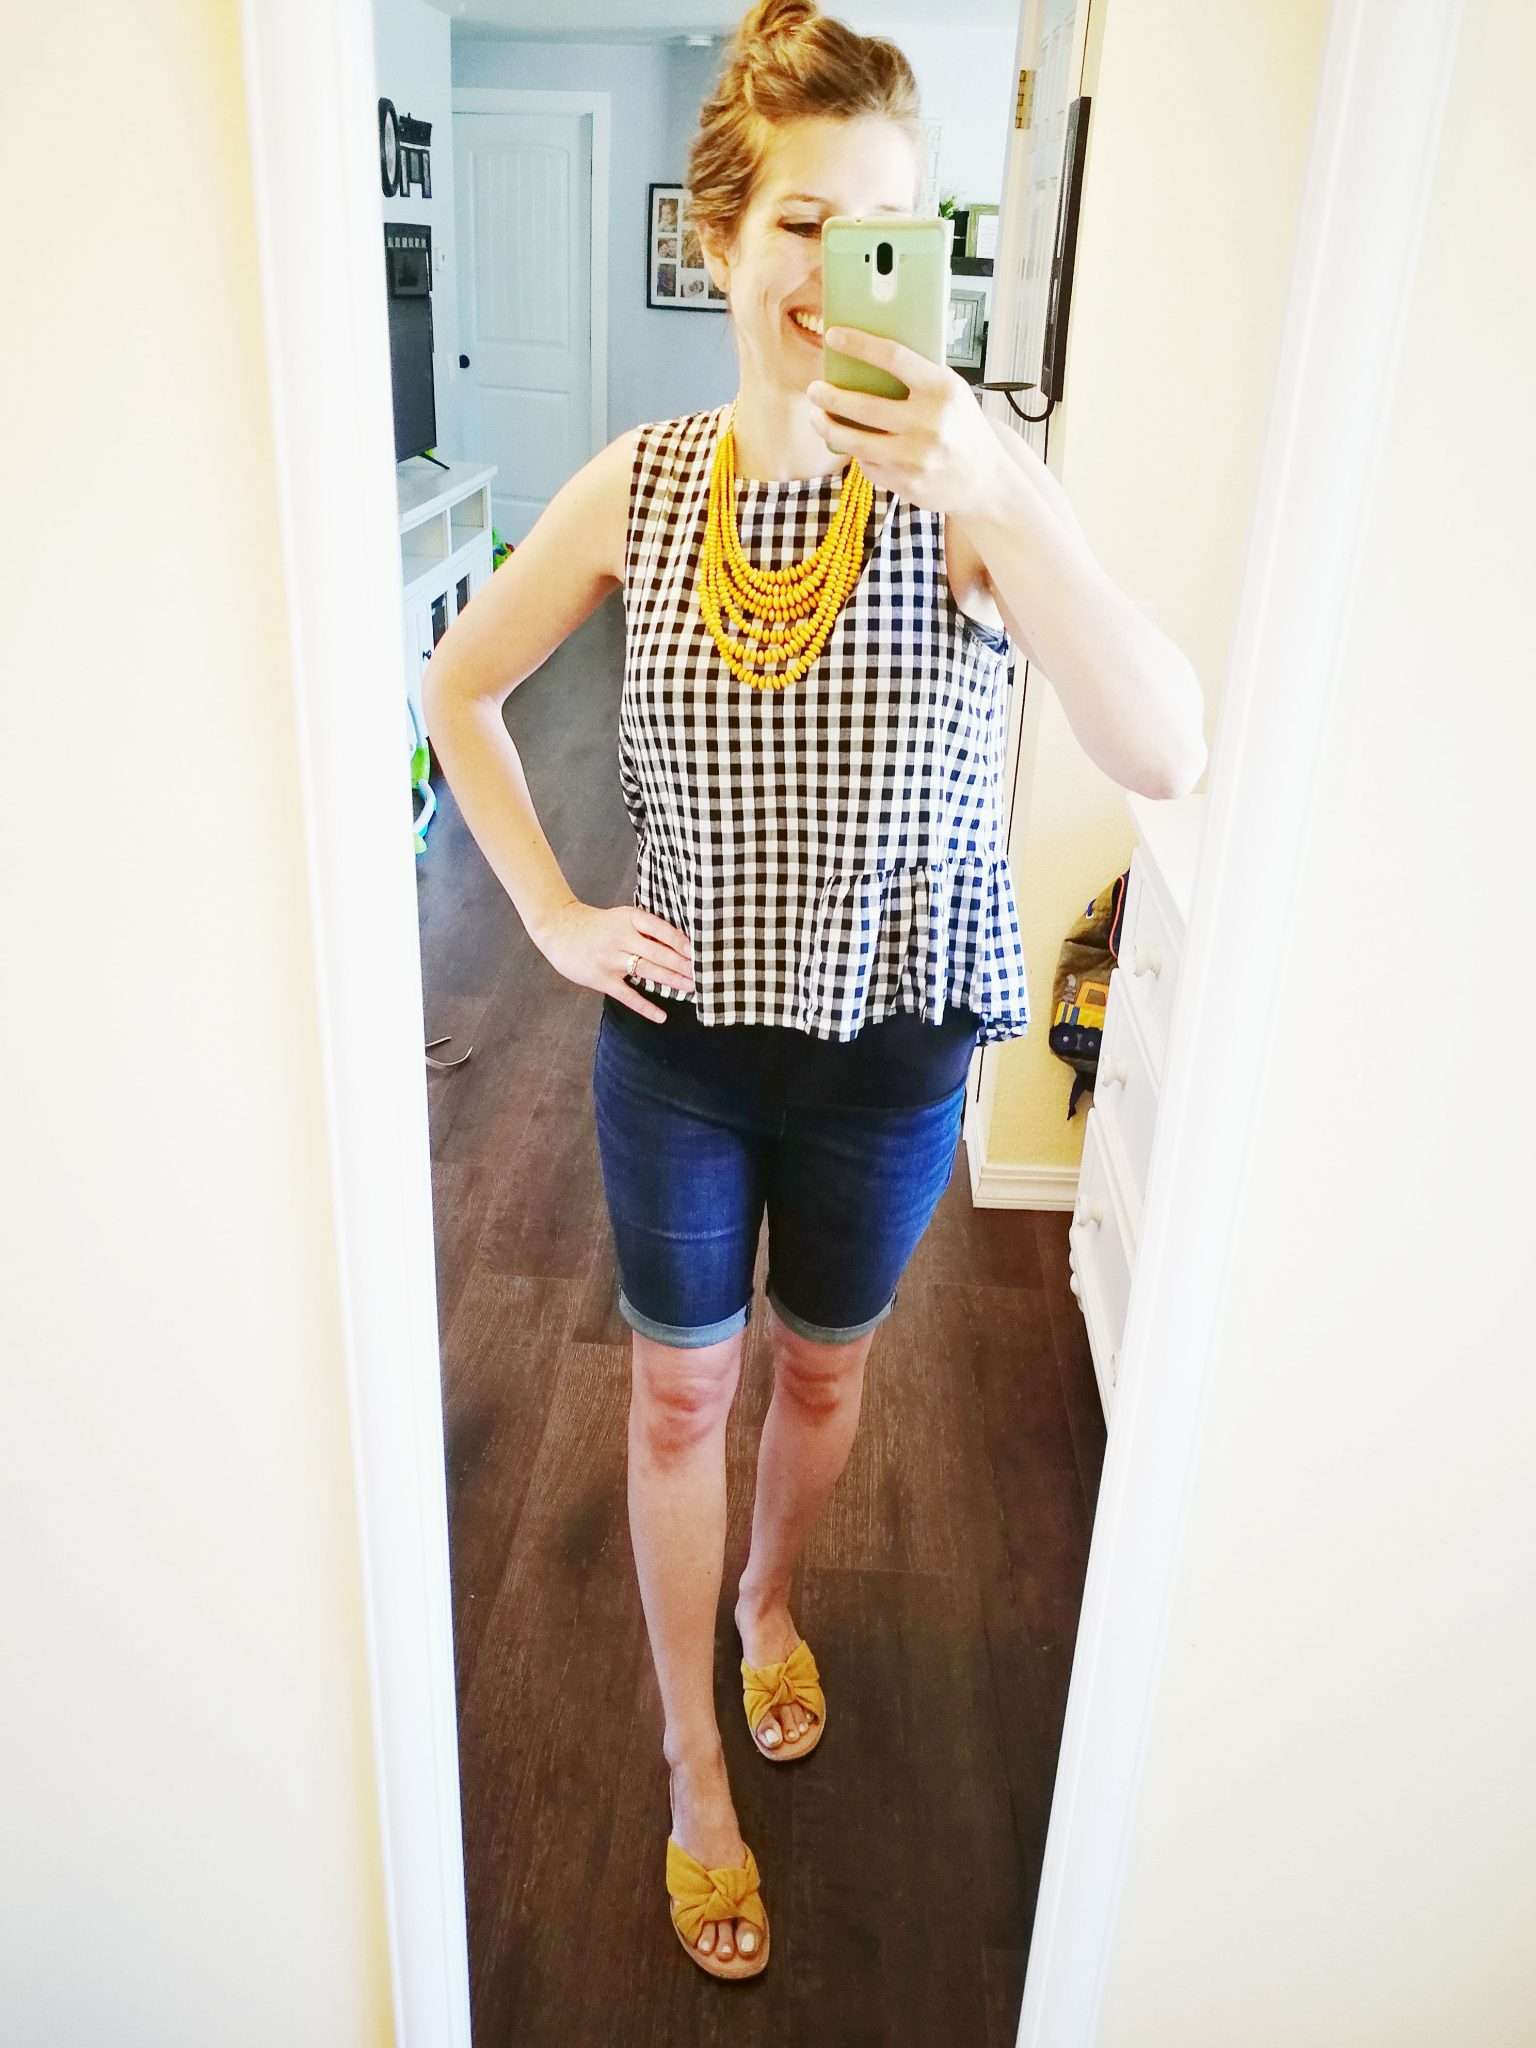 Peplum tank ginham print with yellow necklace untucked with bermuda jeans - when not to tuck your t shirt